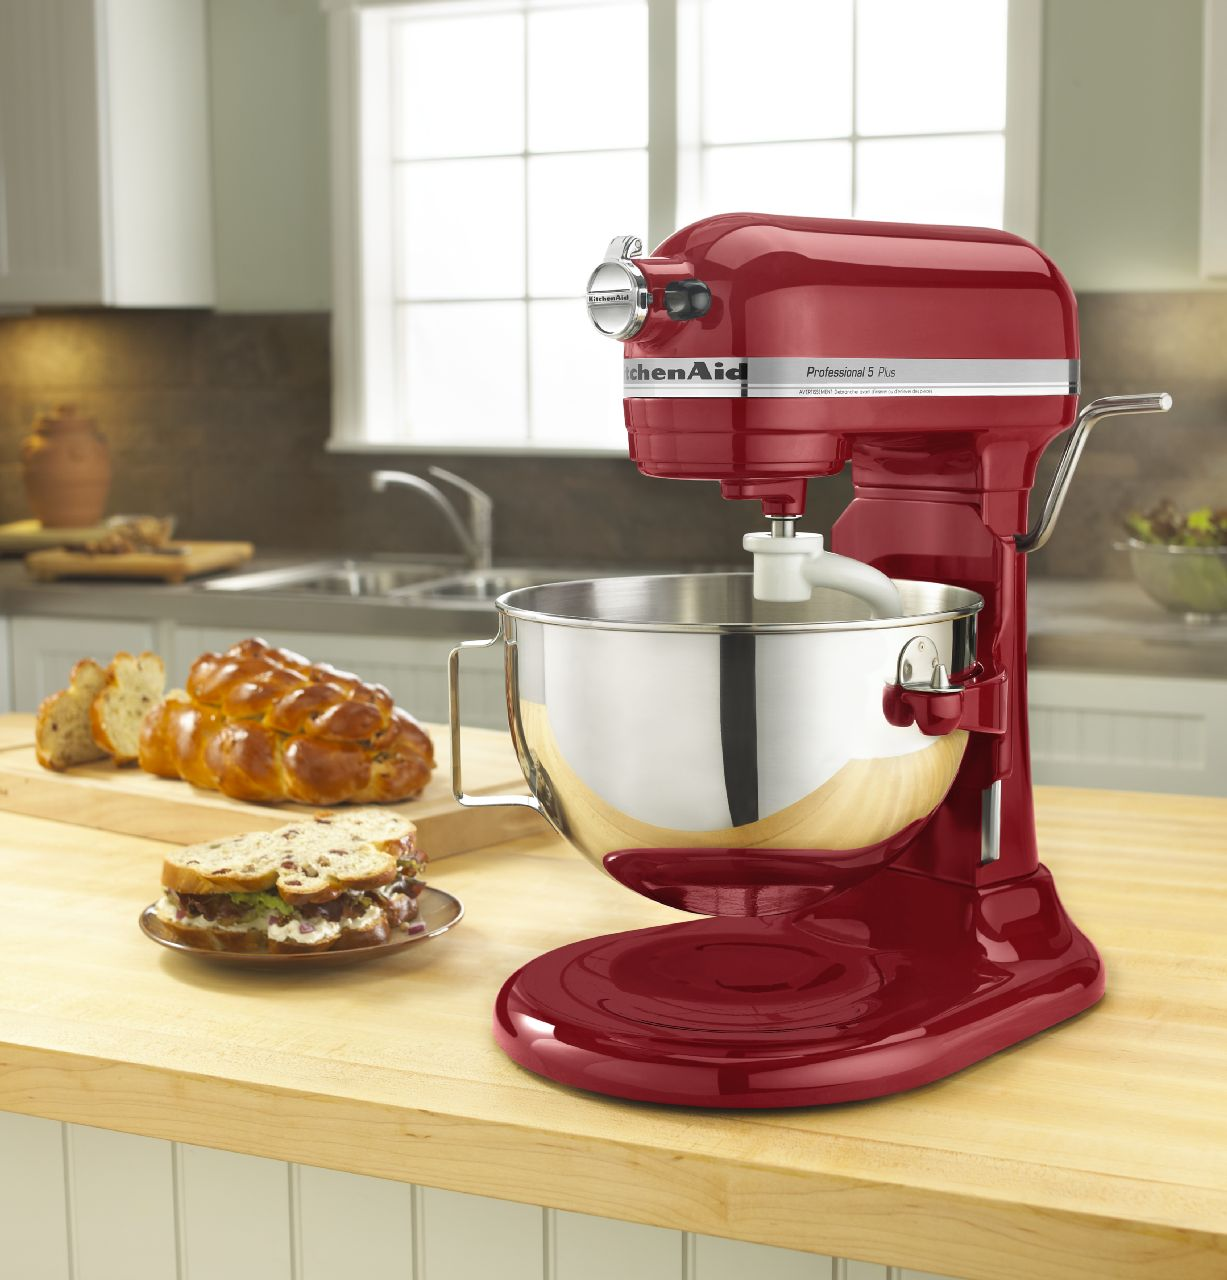 KitchenAid-Professional-5-Plus-Series-5-Quart-Bowl-Lift-Stand-Mixer-KV25G0X thumbnail 5